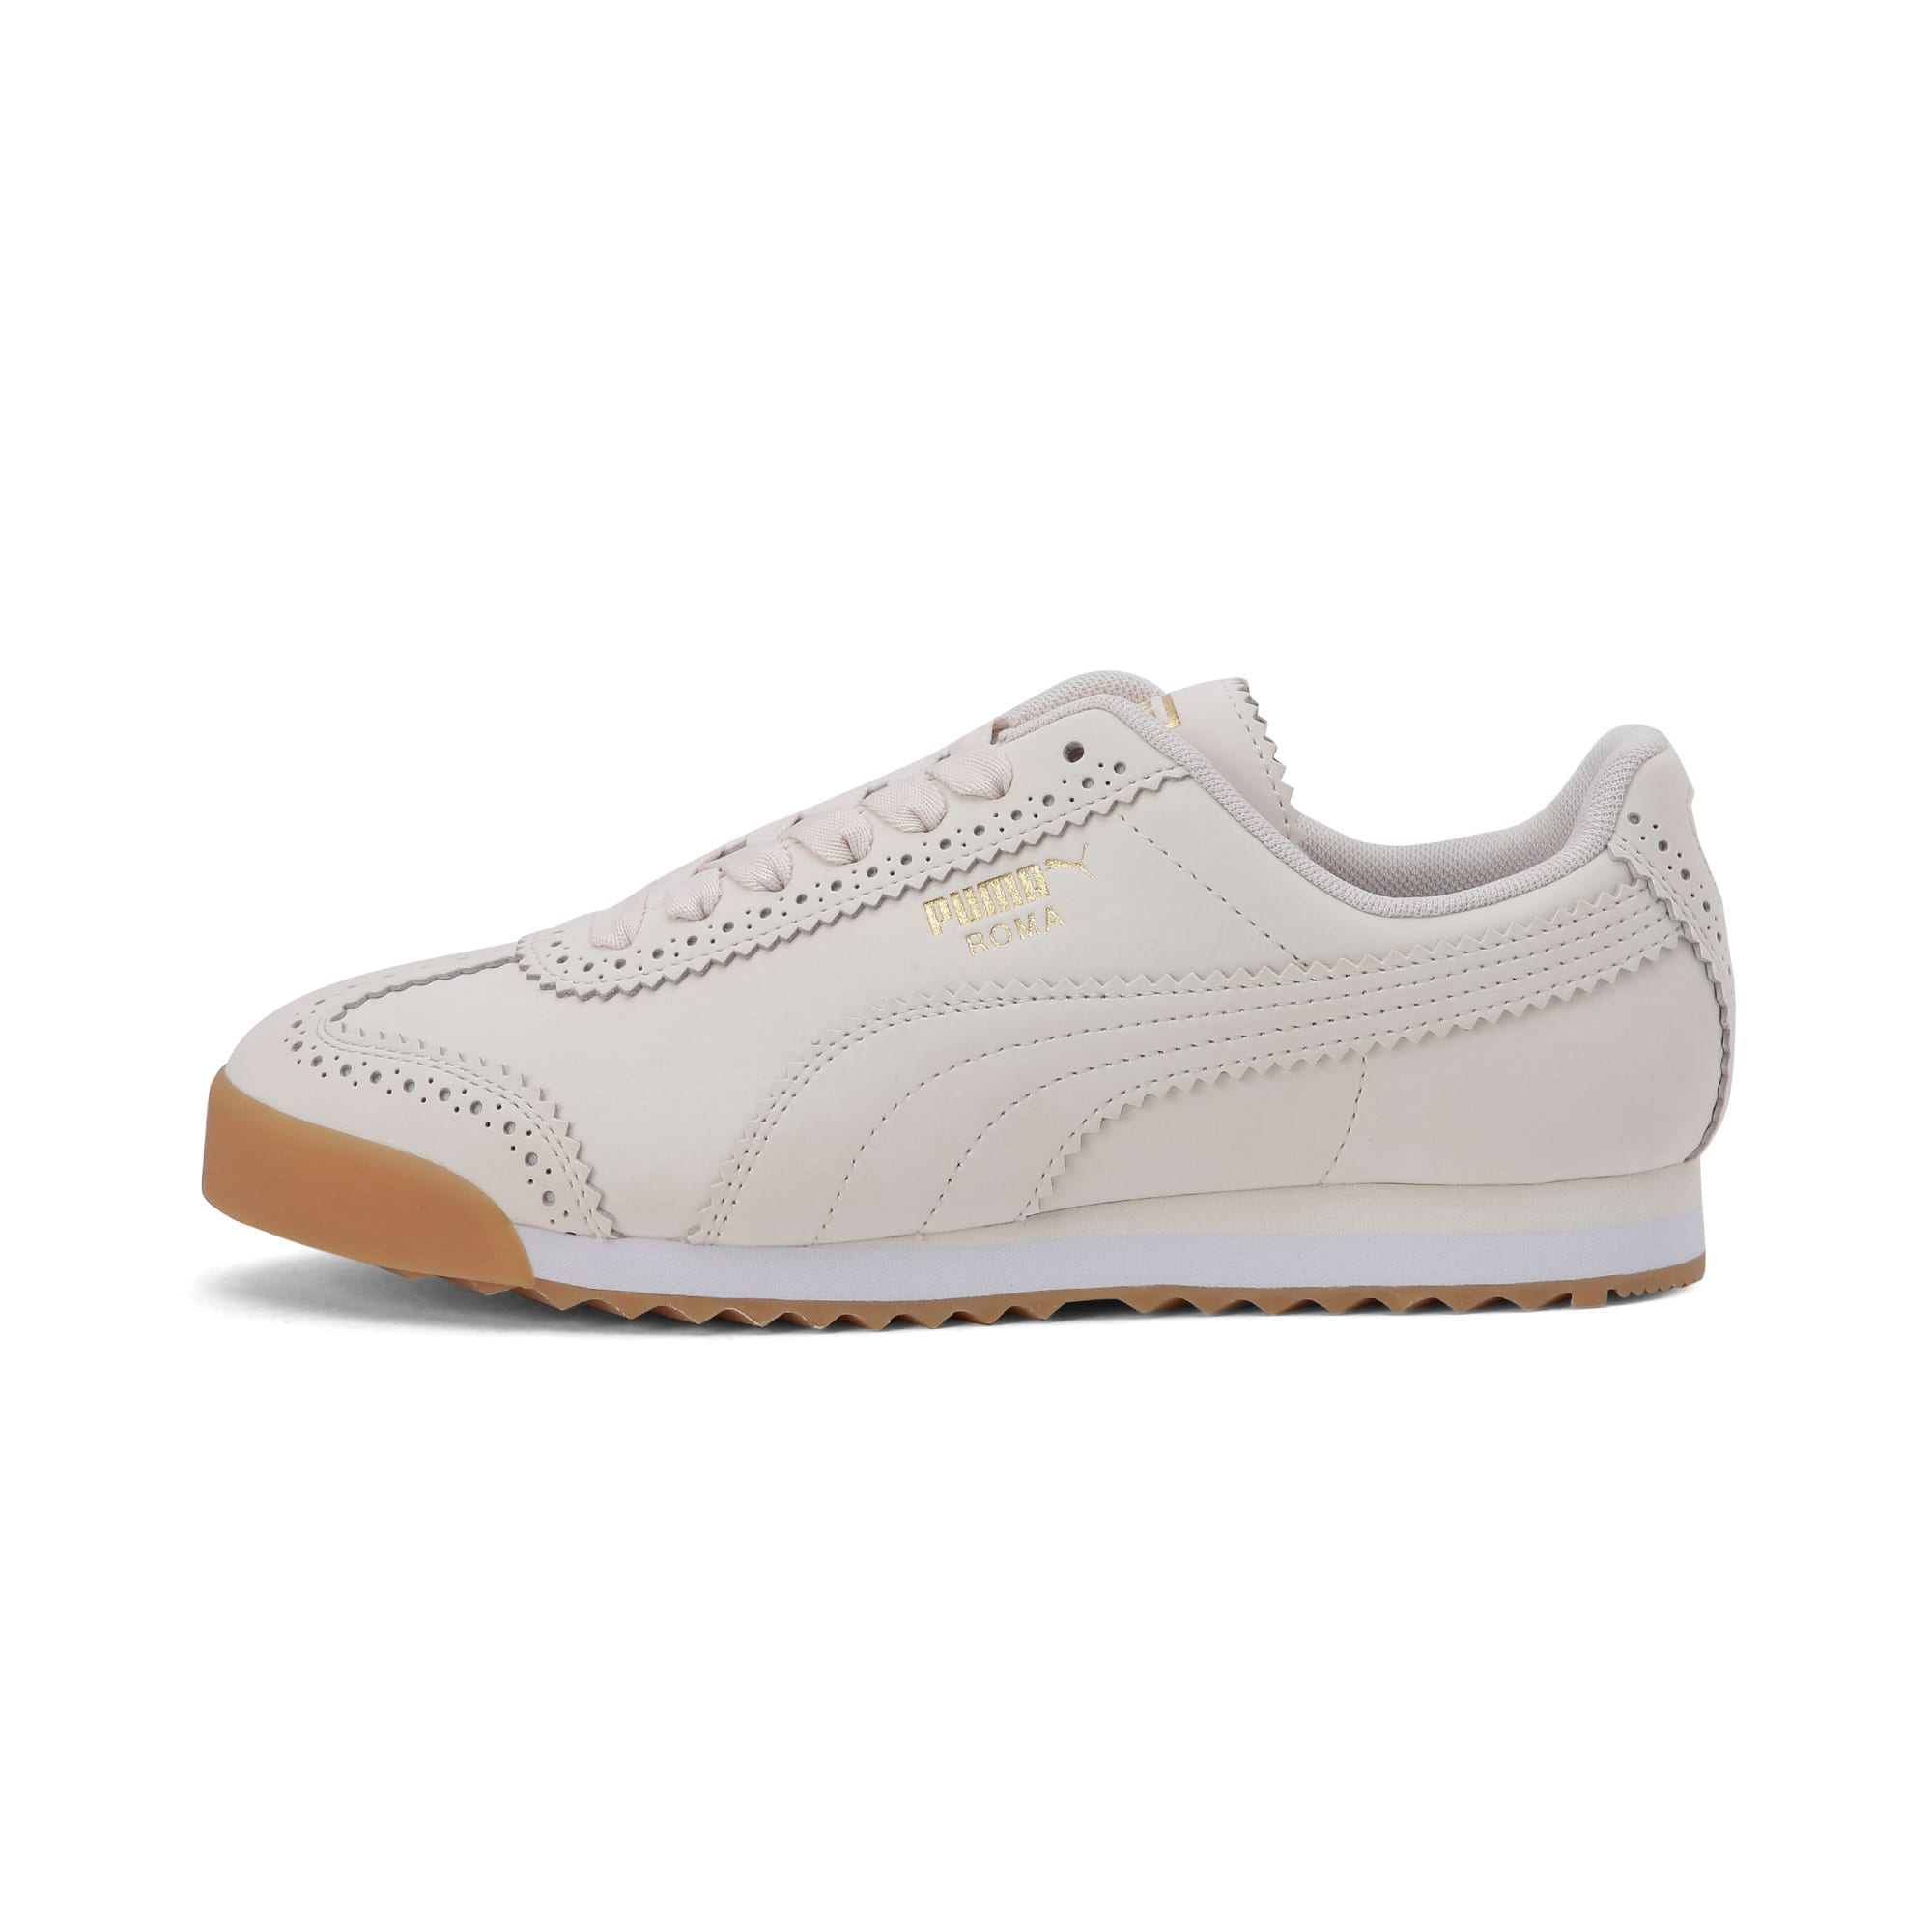 Thumbnail 1 of Roma Brogue Women's Trainers, Pastel Parchment-P.Team Gold, medium-IND